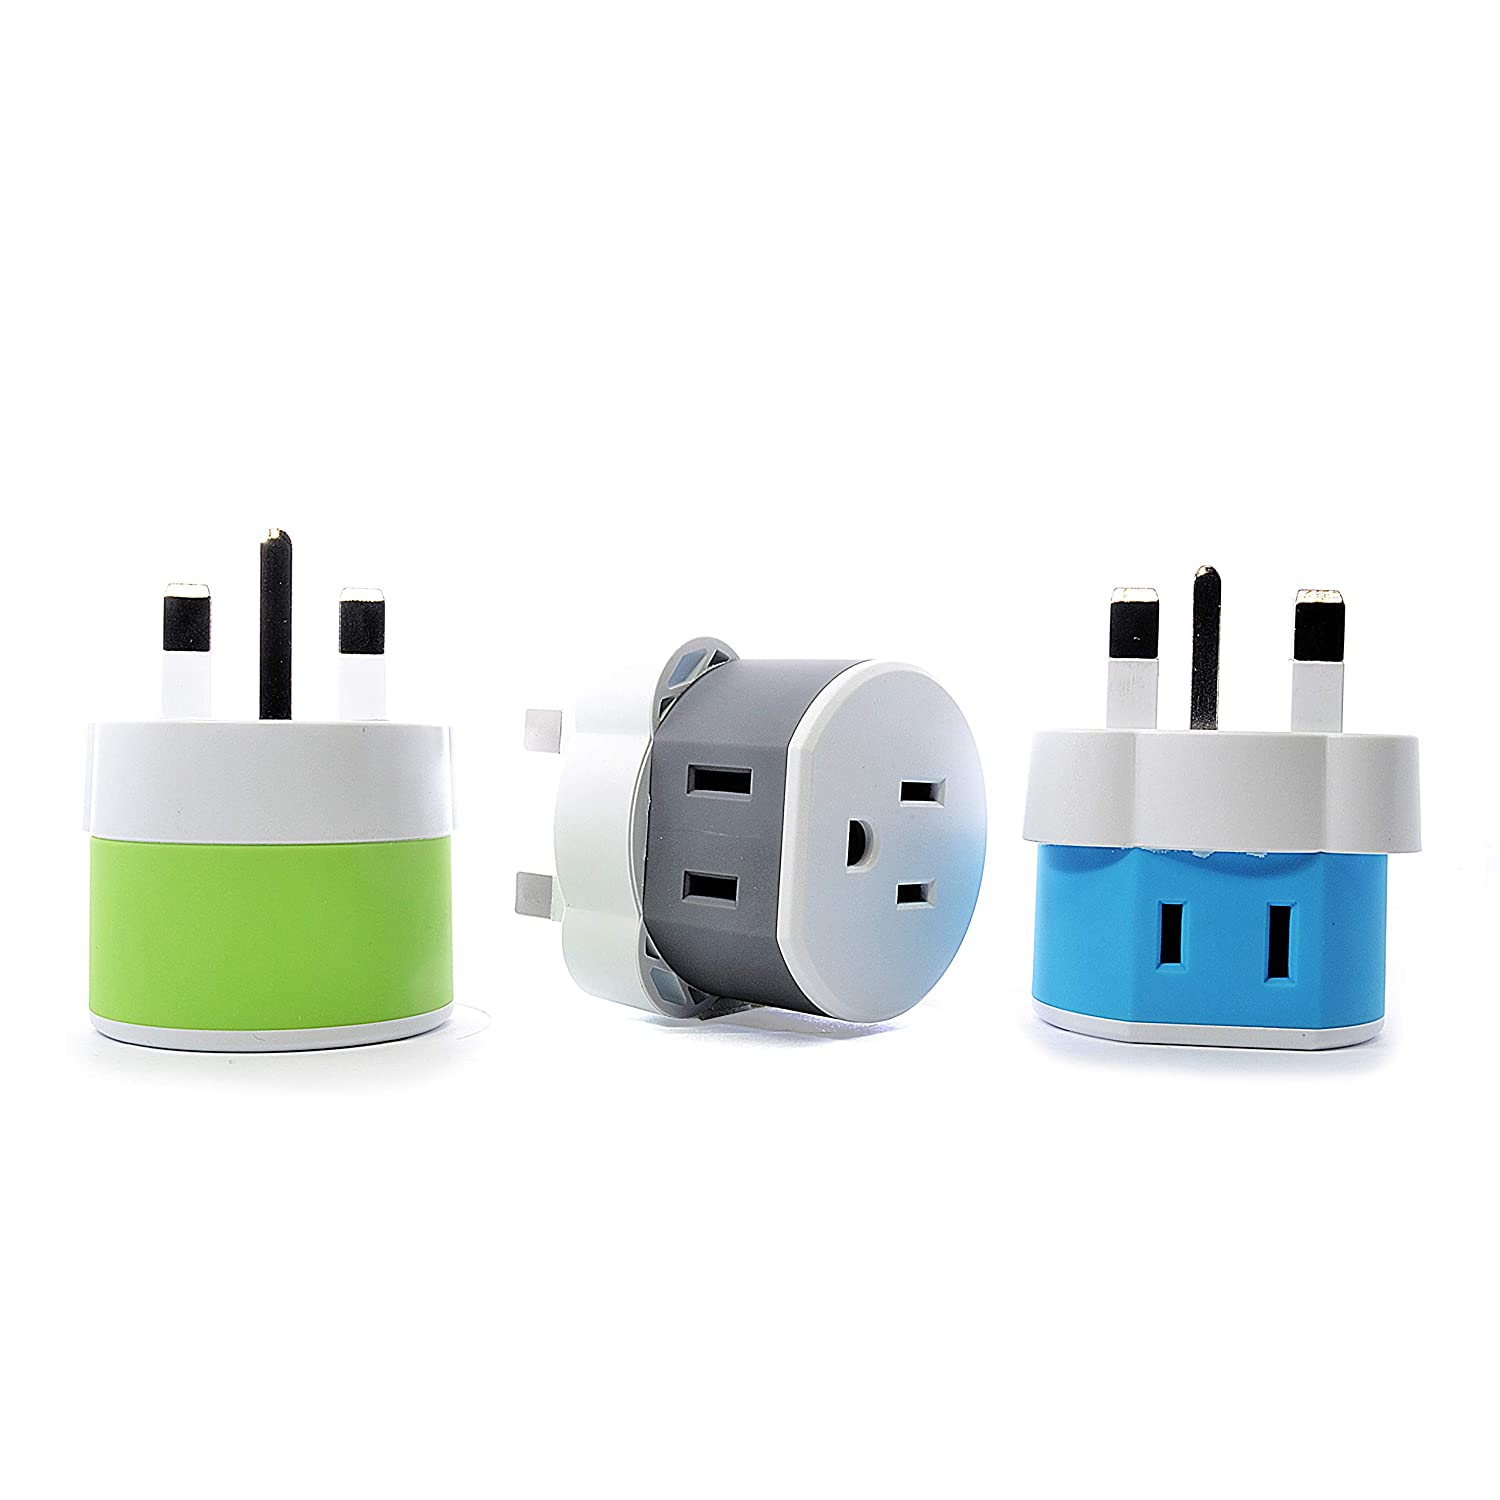 OREI Grounded Universal 2 in 1 Plug Adapter Type G for UK, Hong Kong, Singapore & more - CE Certified - RoHS Compliant WP-G-GN Orei Products